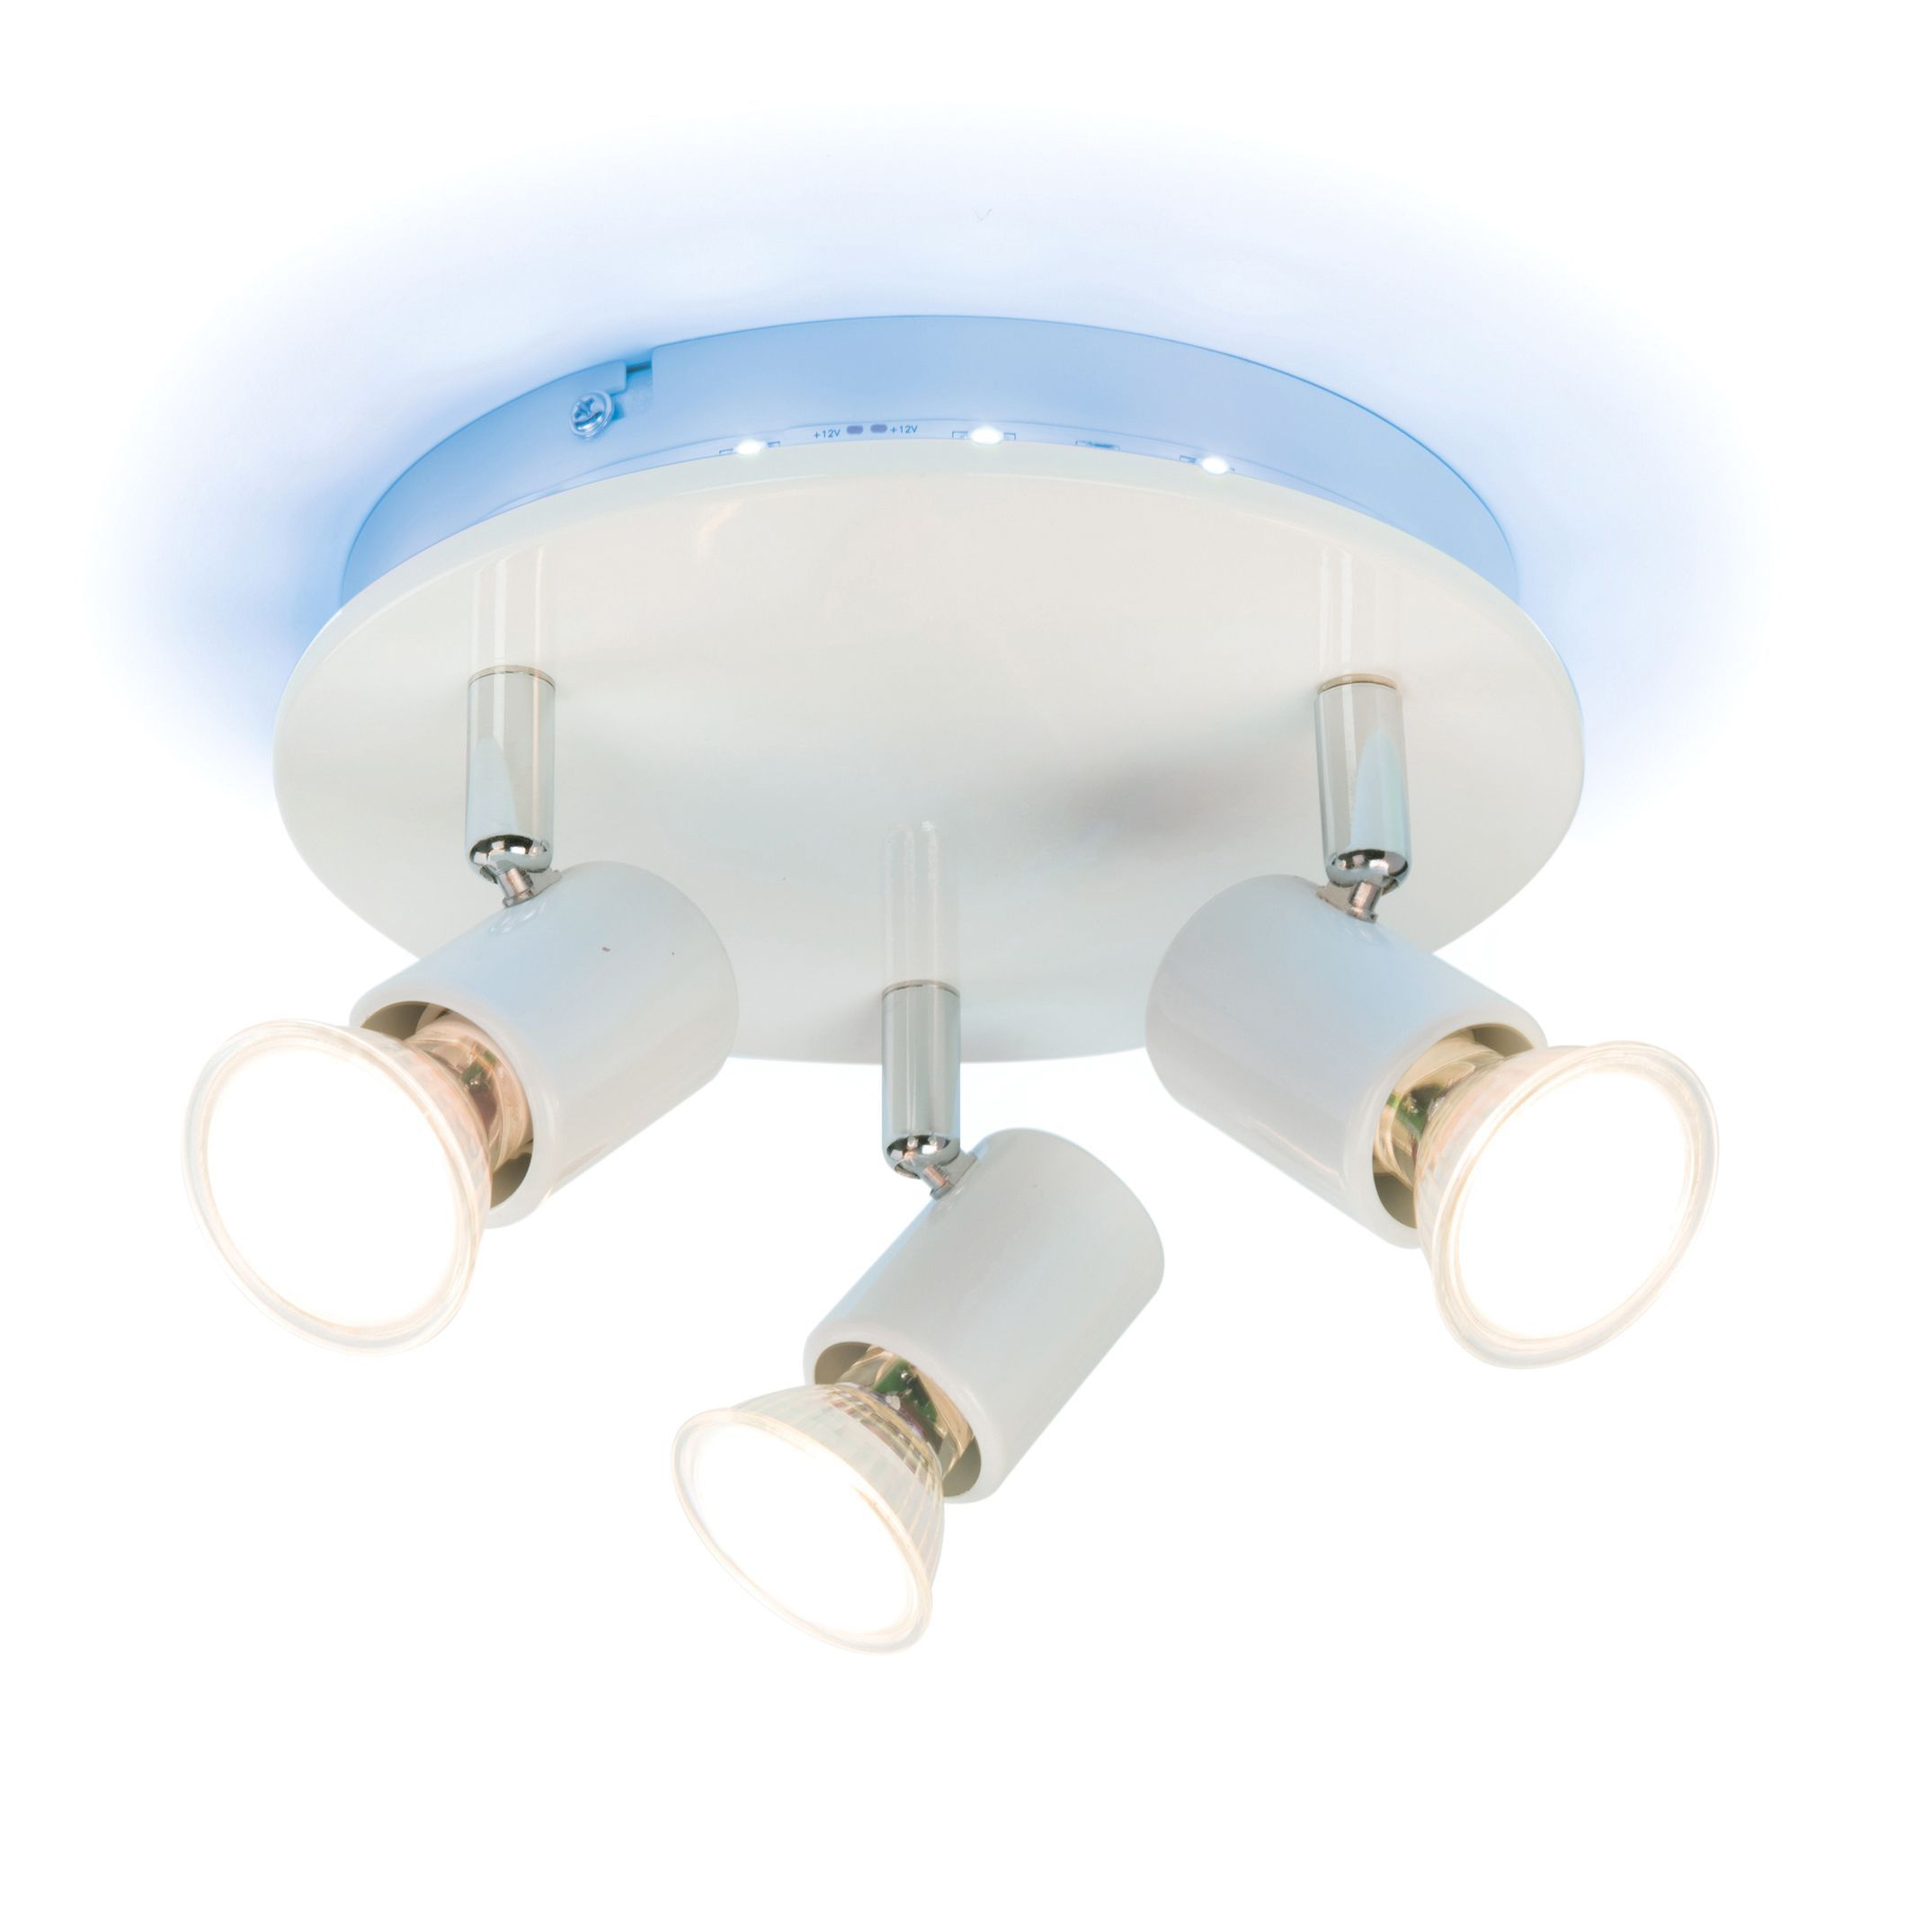 Bathroom ceiling lights b q - Spectrum Colour Changing White Gloss 3 Lamp Ceiling Light Departments Diy At B Q